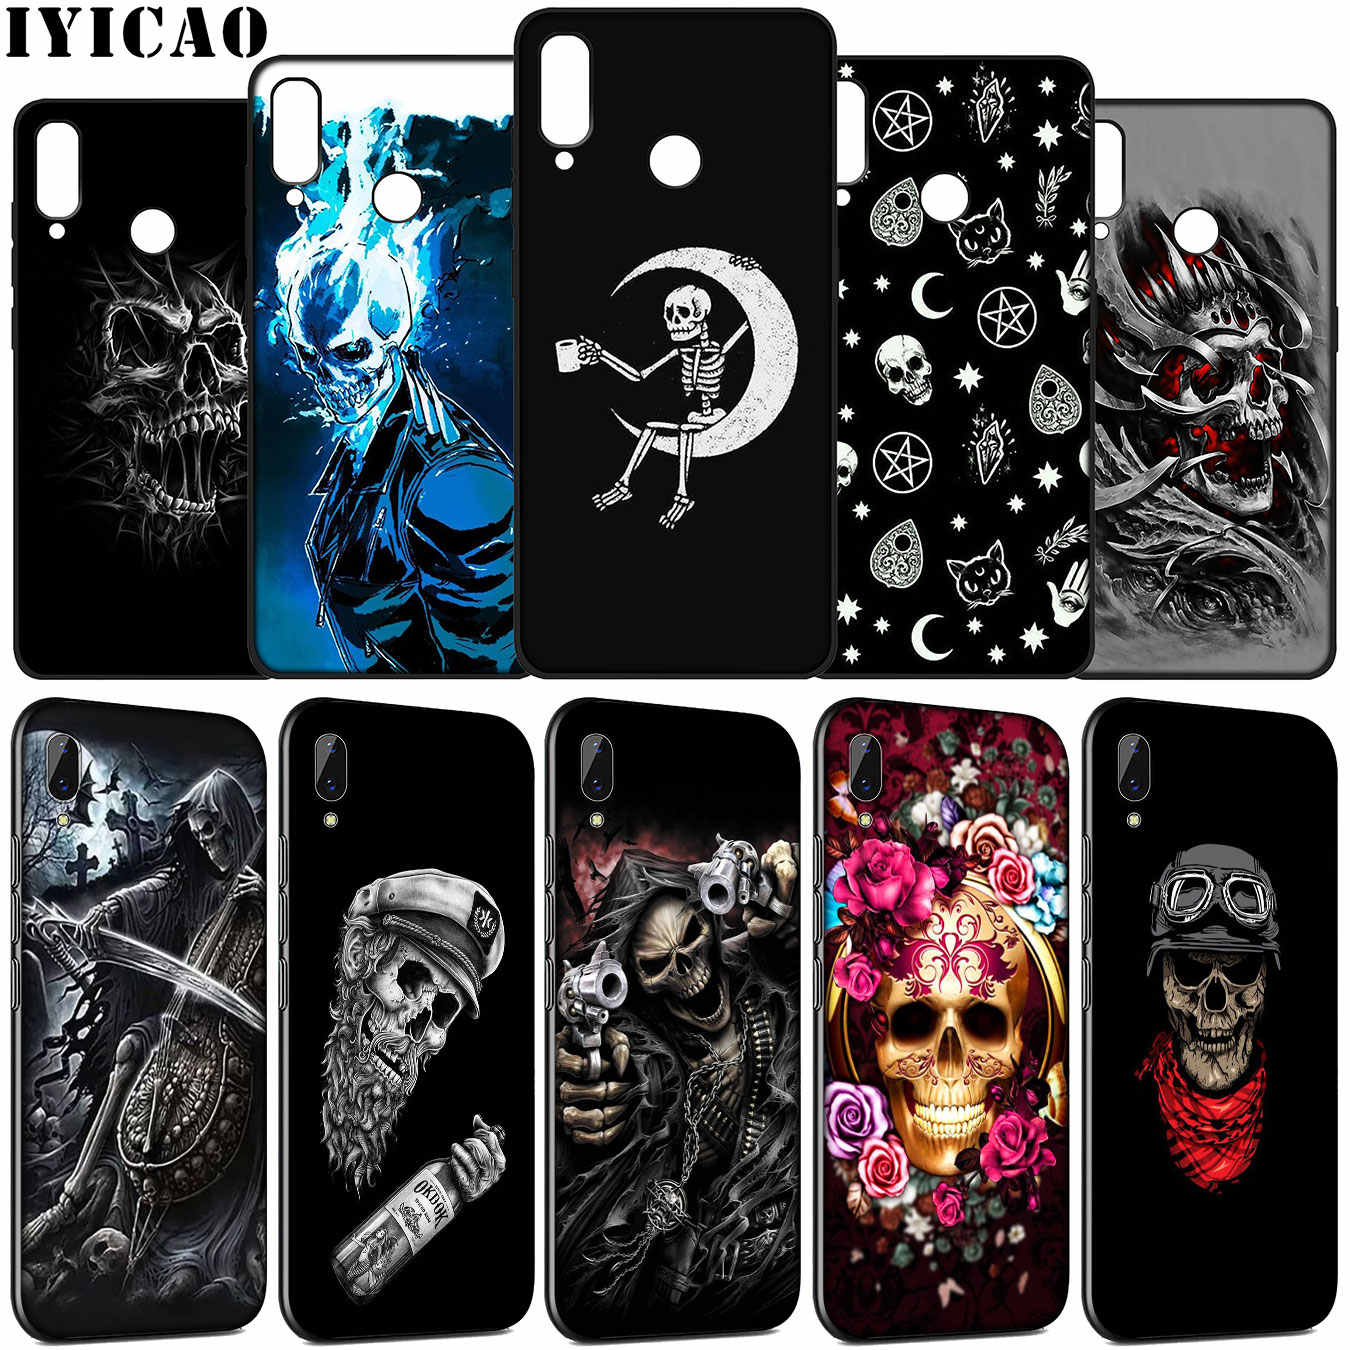 Grim Reaper Skull Skeleton Soft Case for Huawei Y9 Y7 Y6 Prime 2019 2018 Honor view 20 8C 8X 8 9 9X 10 Lite 7C 7X 7A Pro